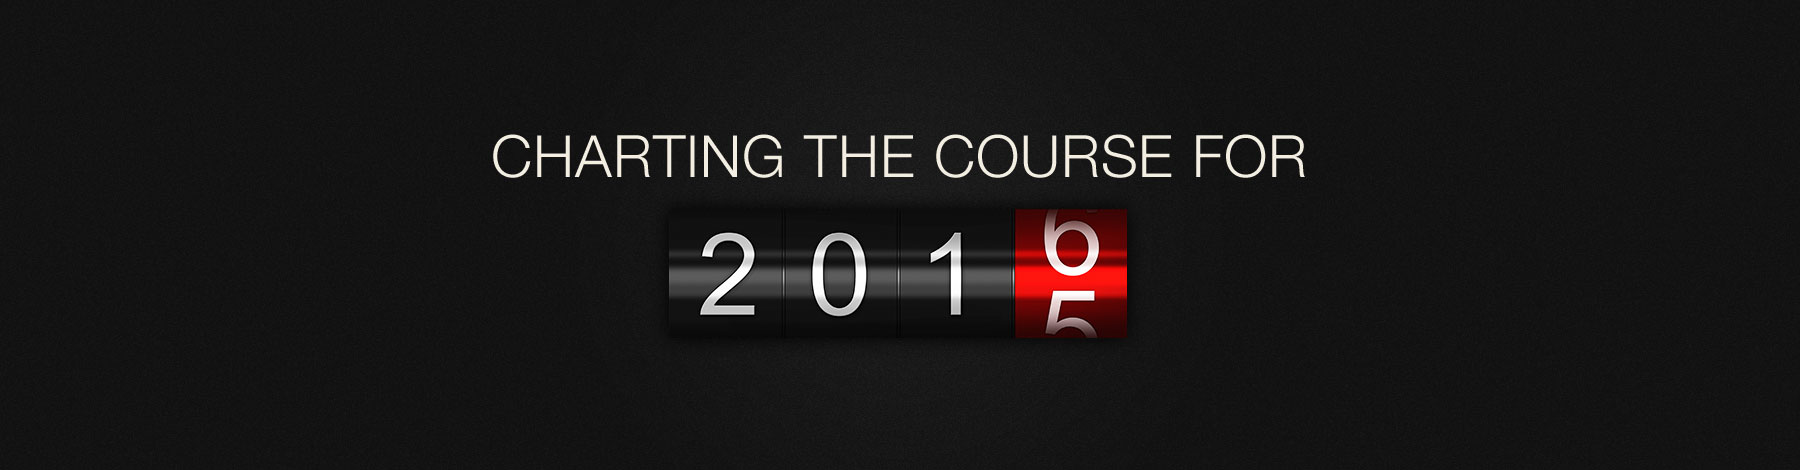 Charting-the-Course-for-2016-Rotator